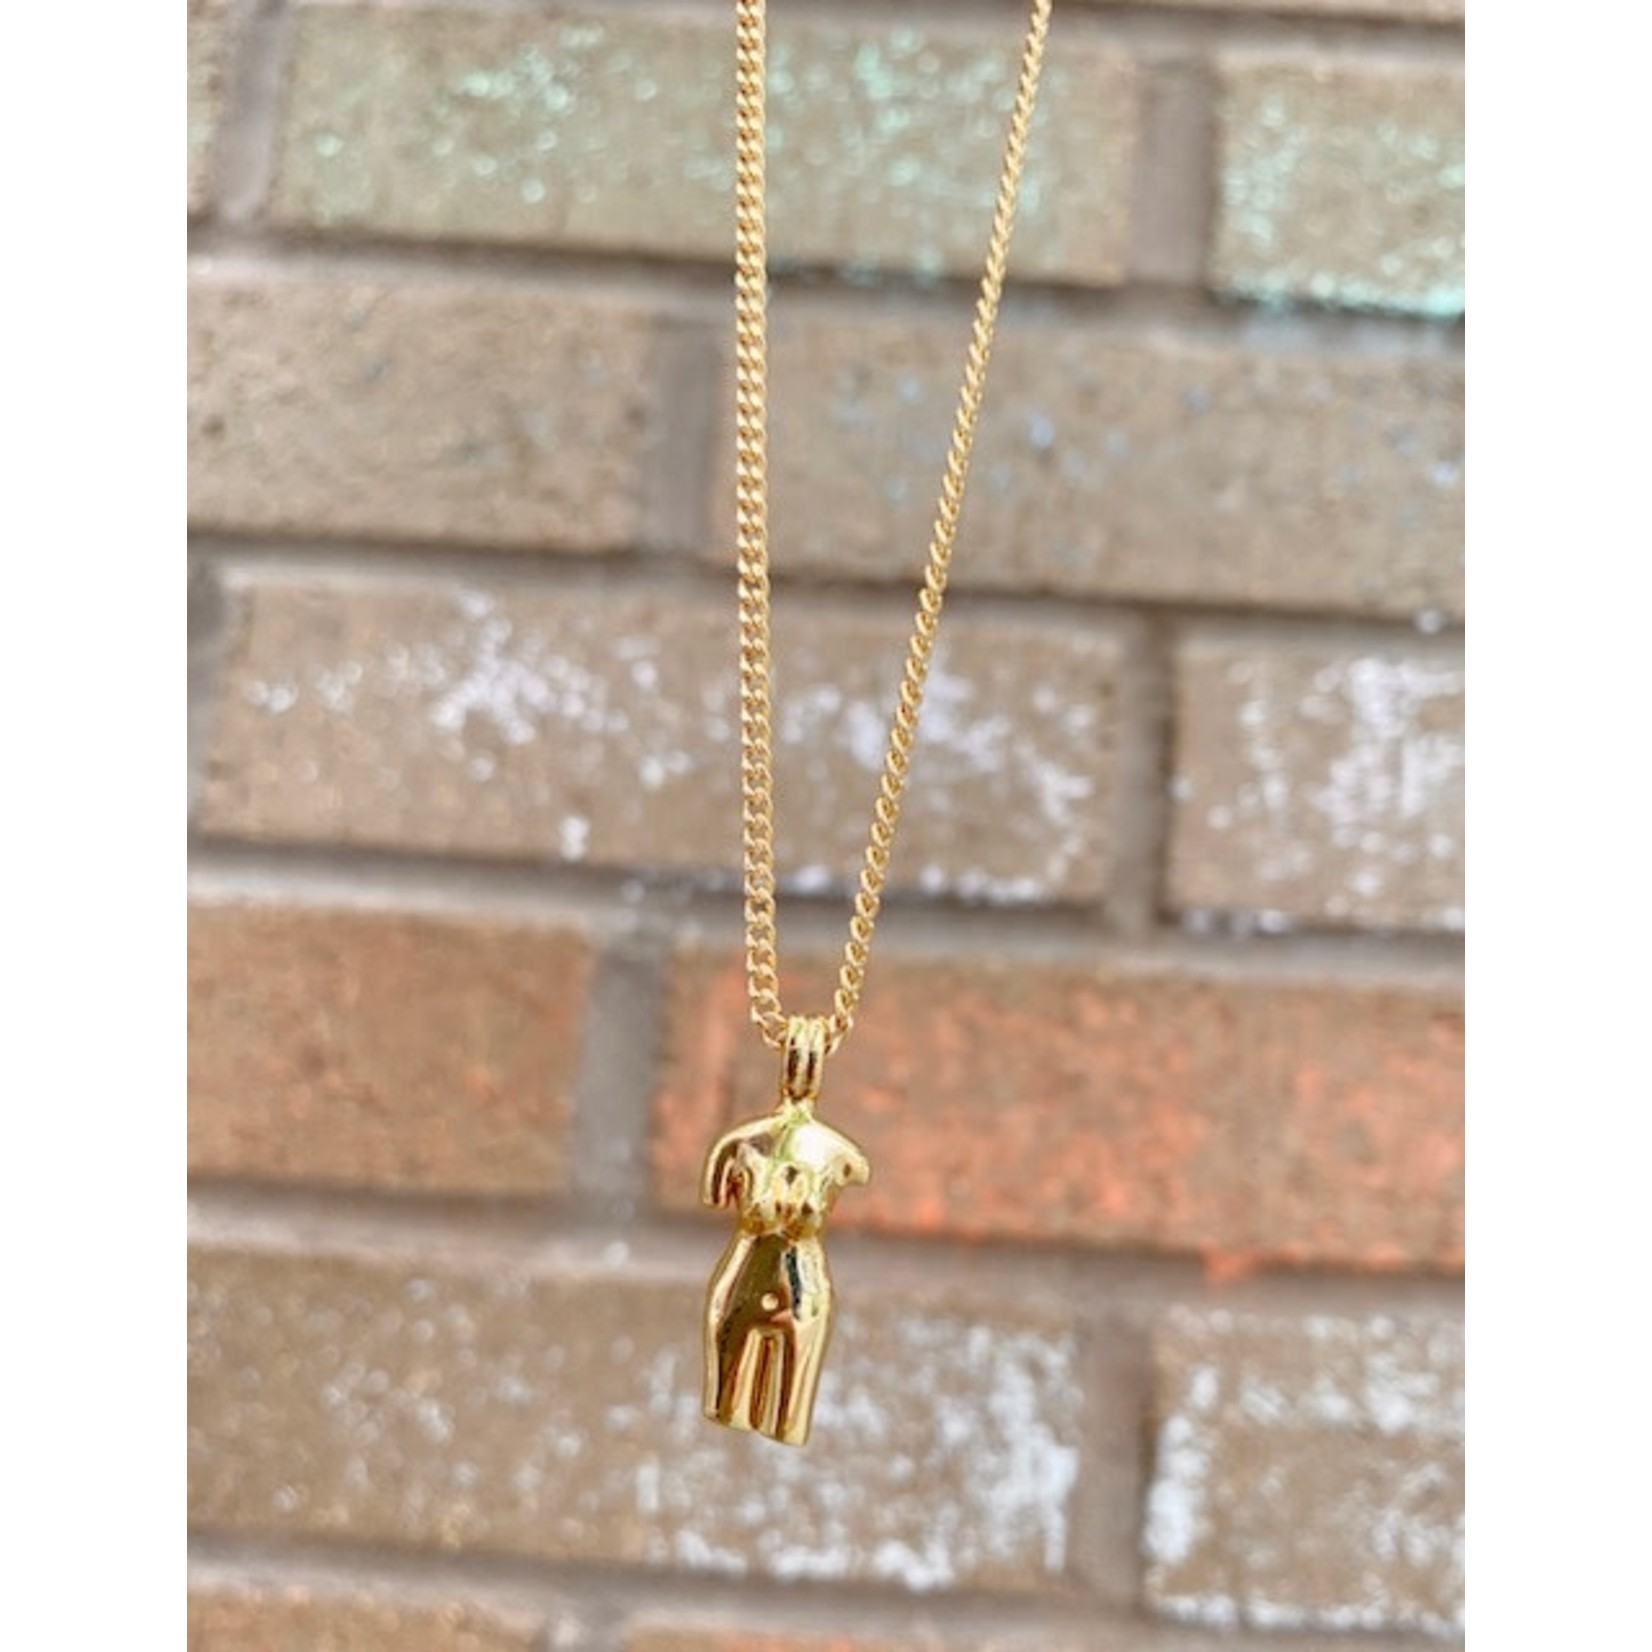 Oceanne (POC) Goddess Body Gold-Plated Necklace